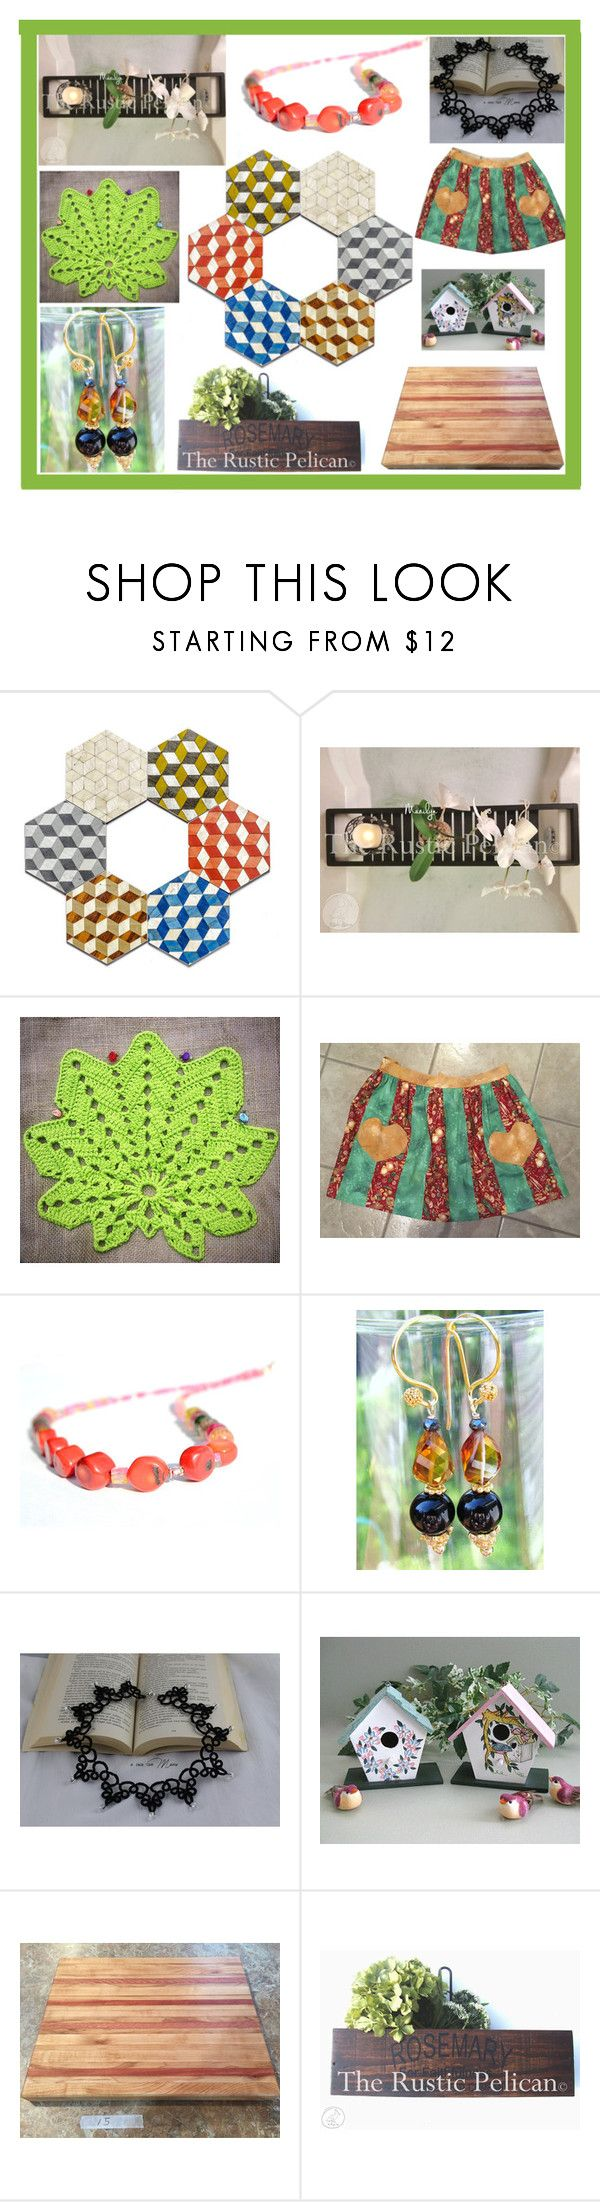 """""""Great Etsy Shopping"""" by belladonnasjoy ❤ liked on Polyvore featuring Cadeau and rustic"""